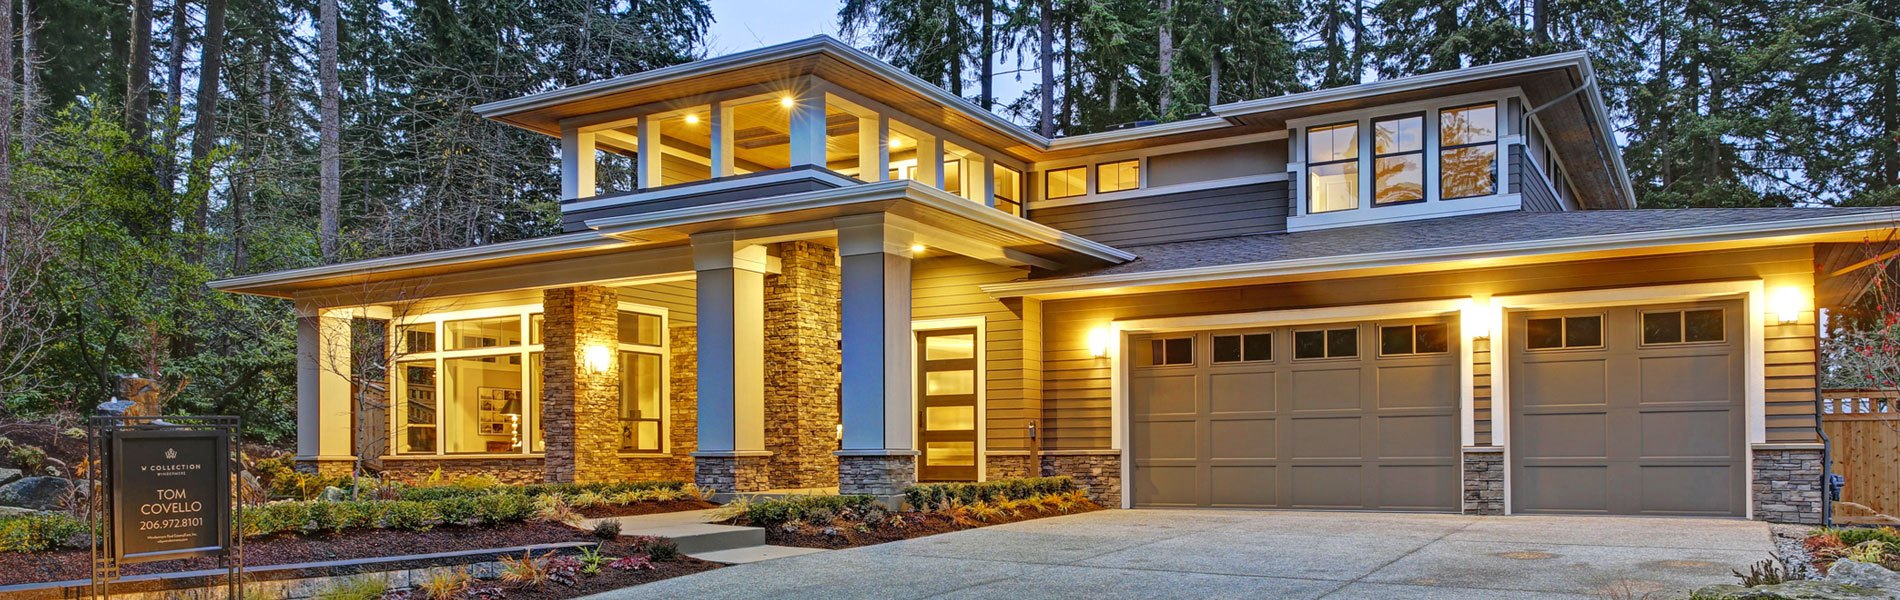 Master Garage Door Service Denver, CO 303-502-2642